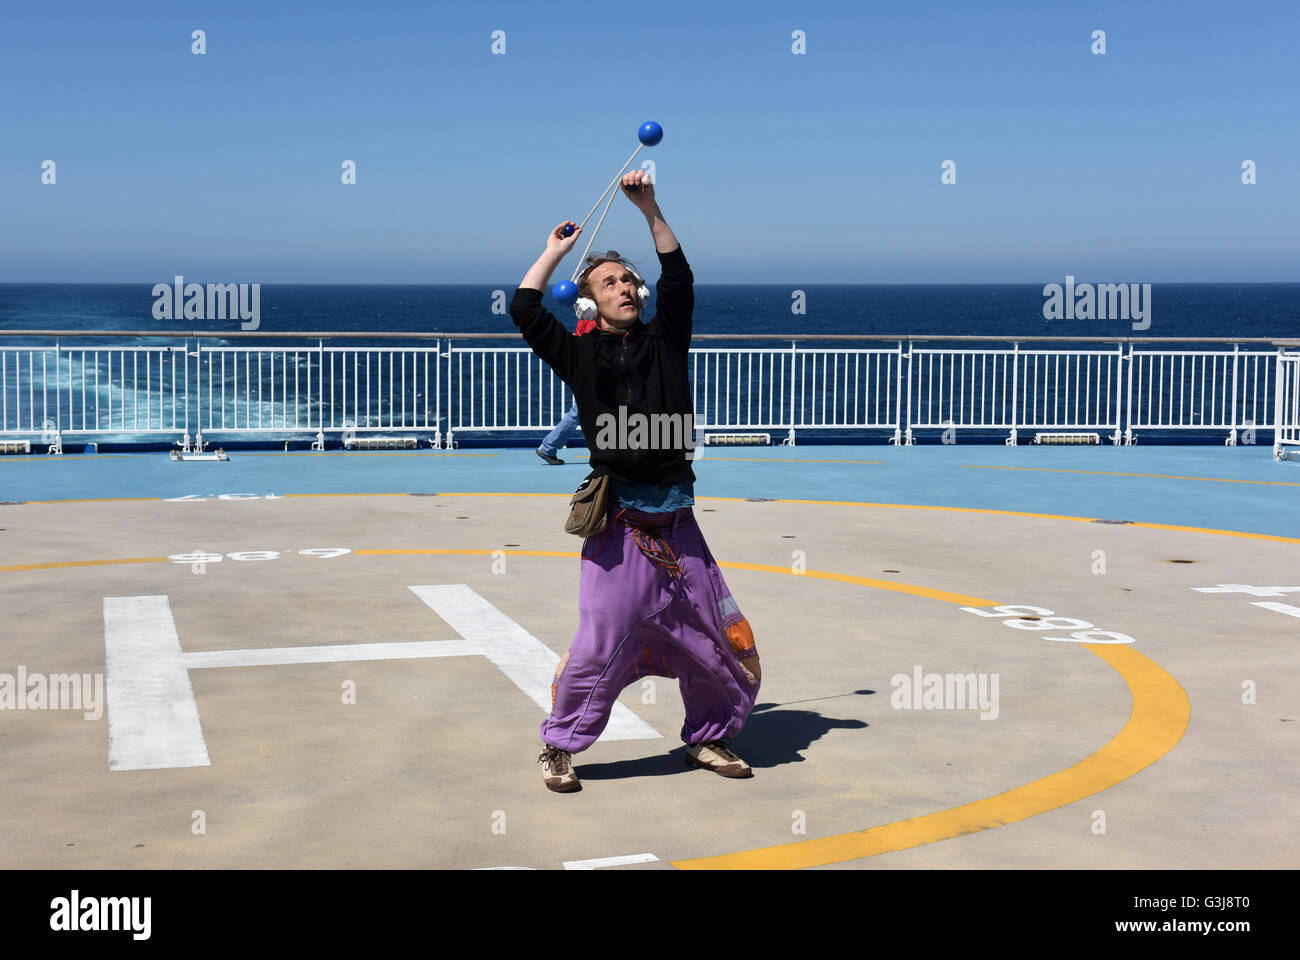 Man juggling on deck of MV Pont-Aven the Brittany Ferries cruiseferry sailing between Portsmouth and Santander. - Stock Image